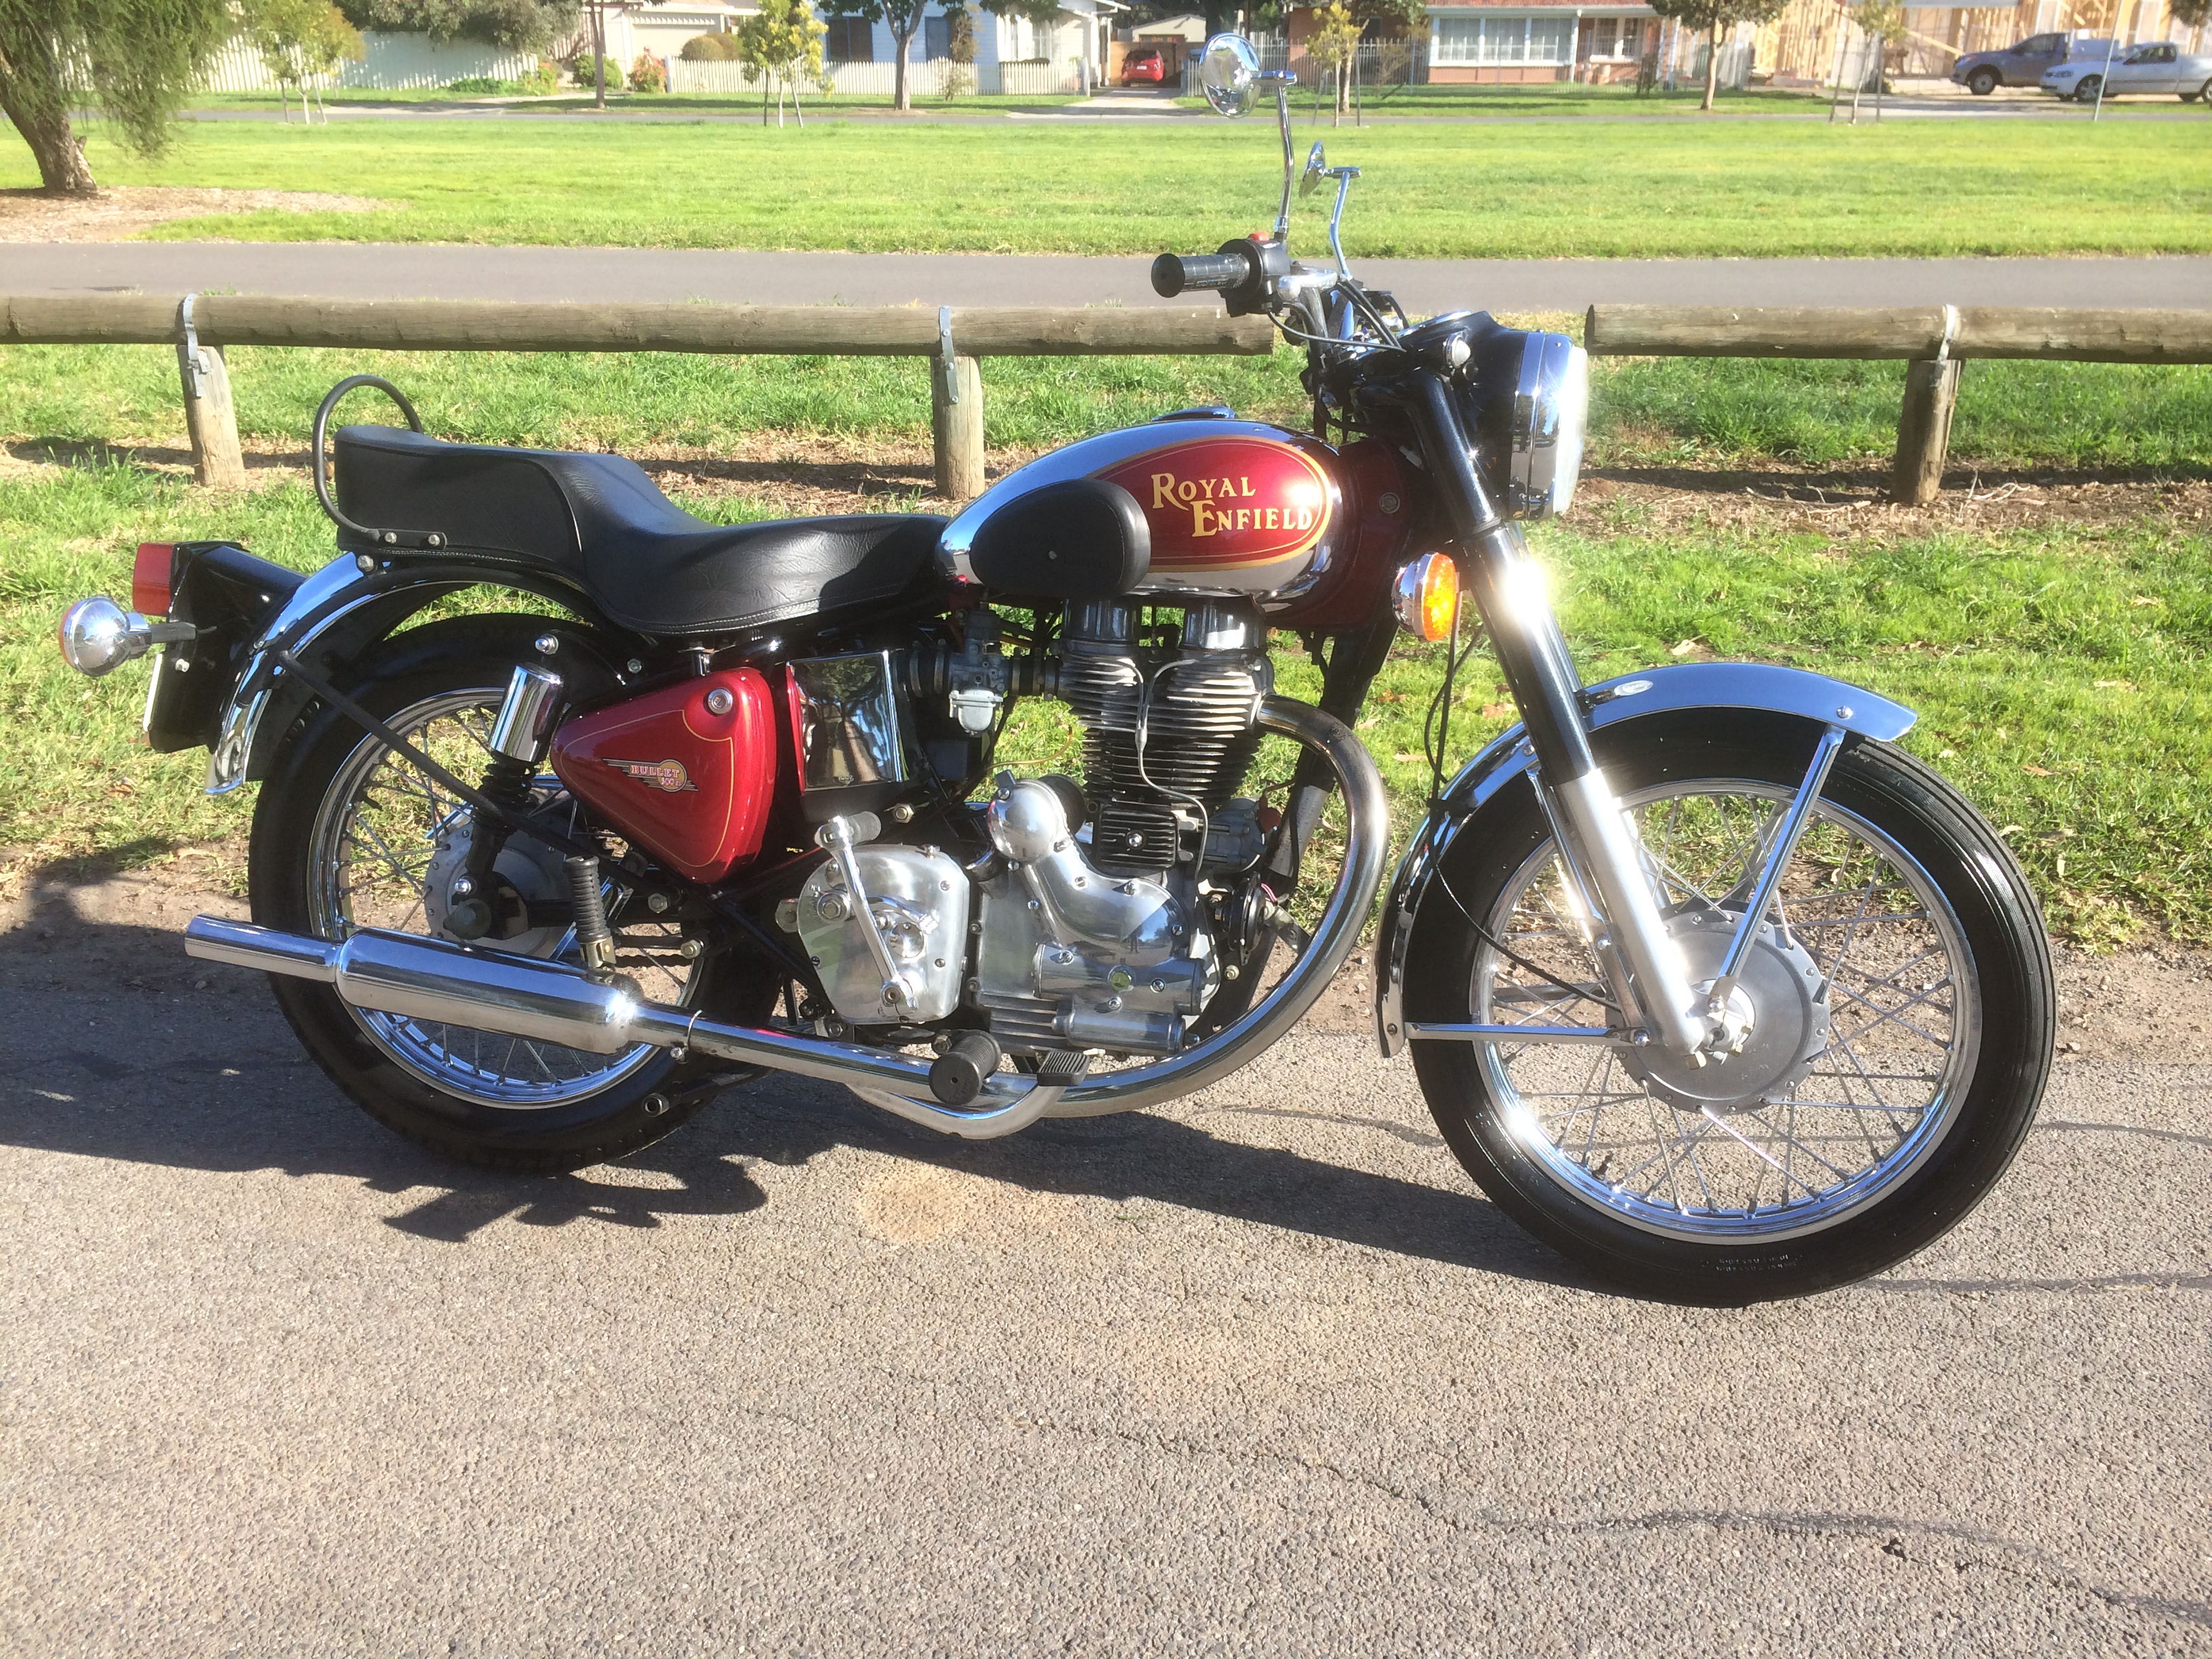 Royal Enfield Bullet 500 Army 2003 images #123836